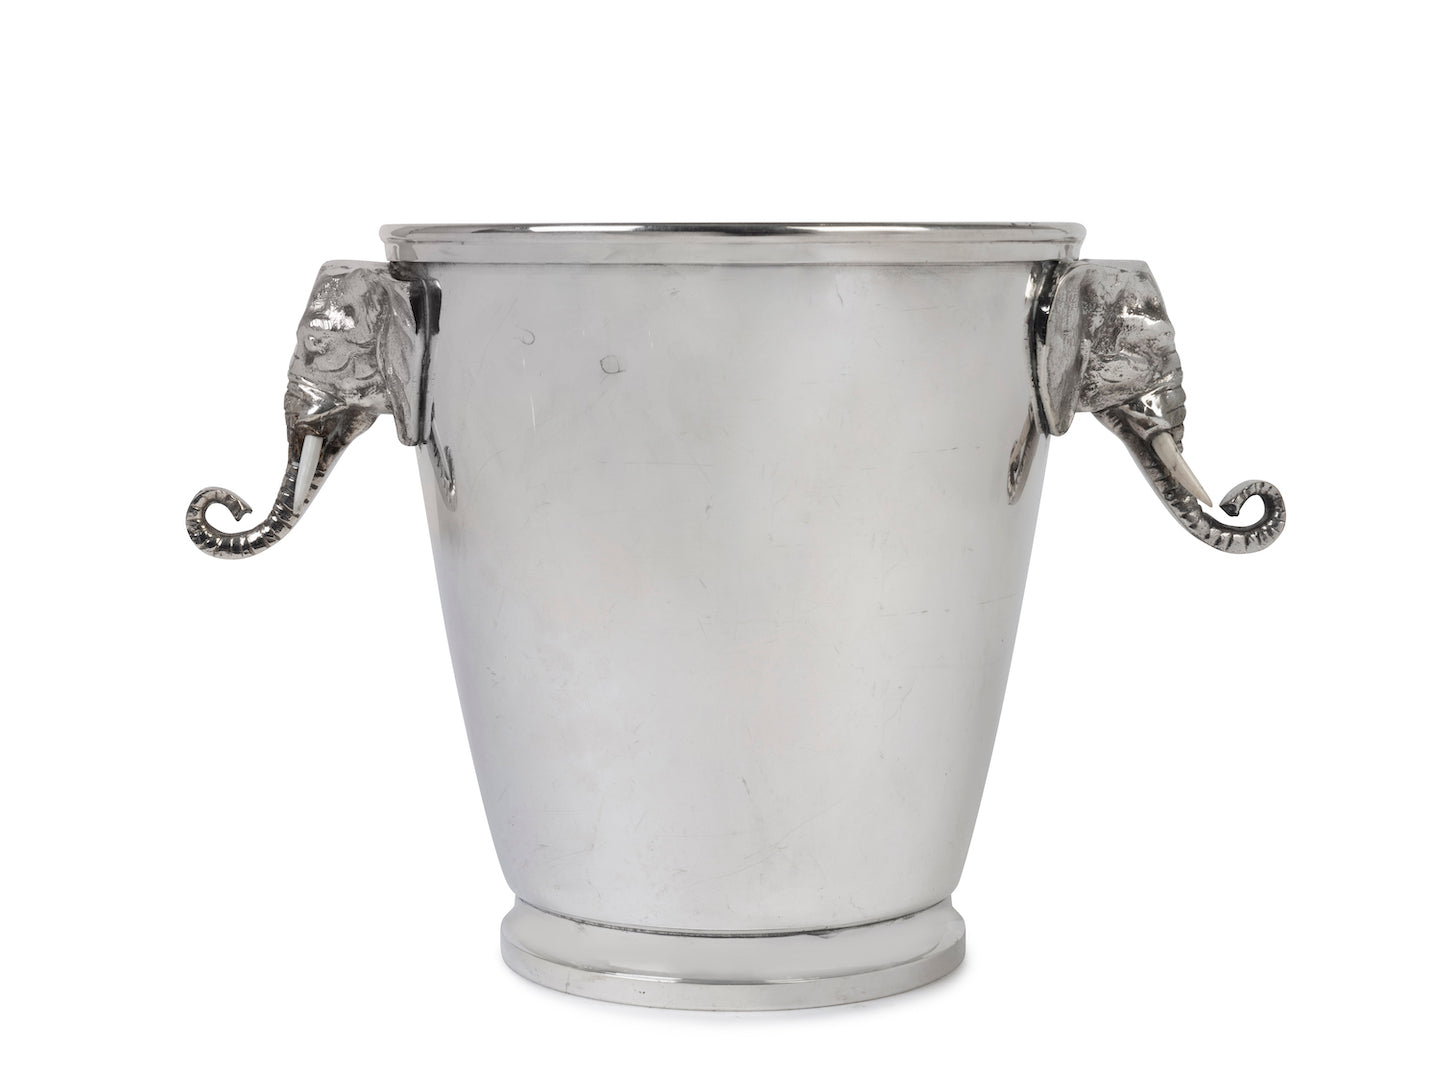 SOLD A good quality silver-plated elephant-head wine cooler, Italian Circa 1950